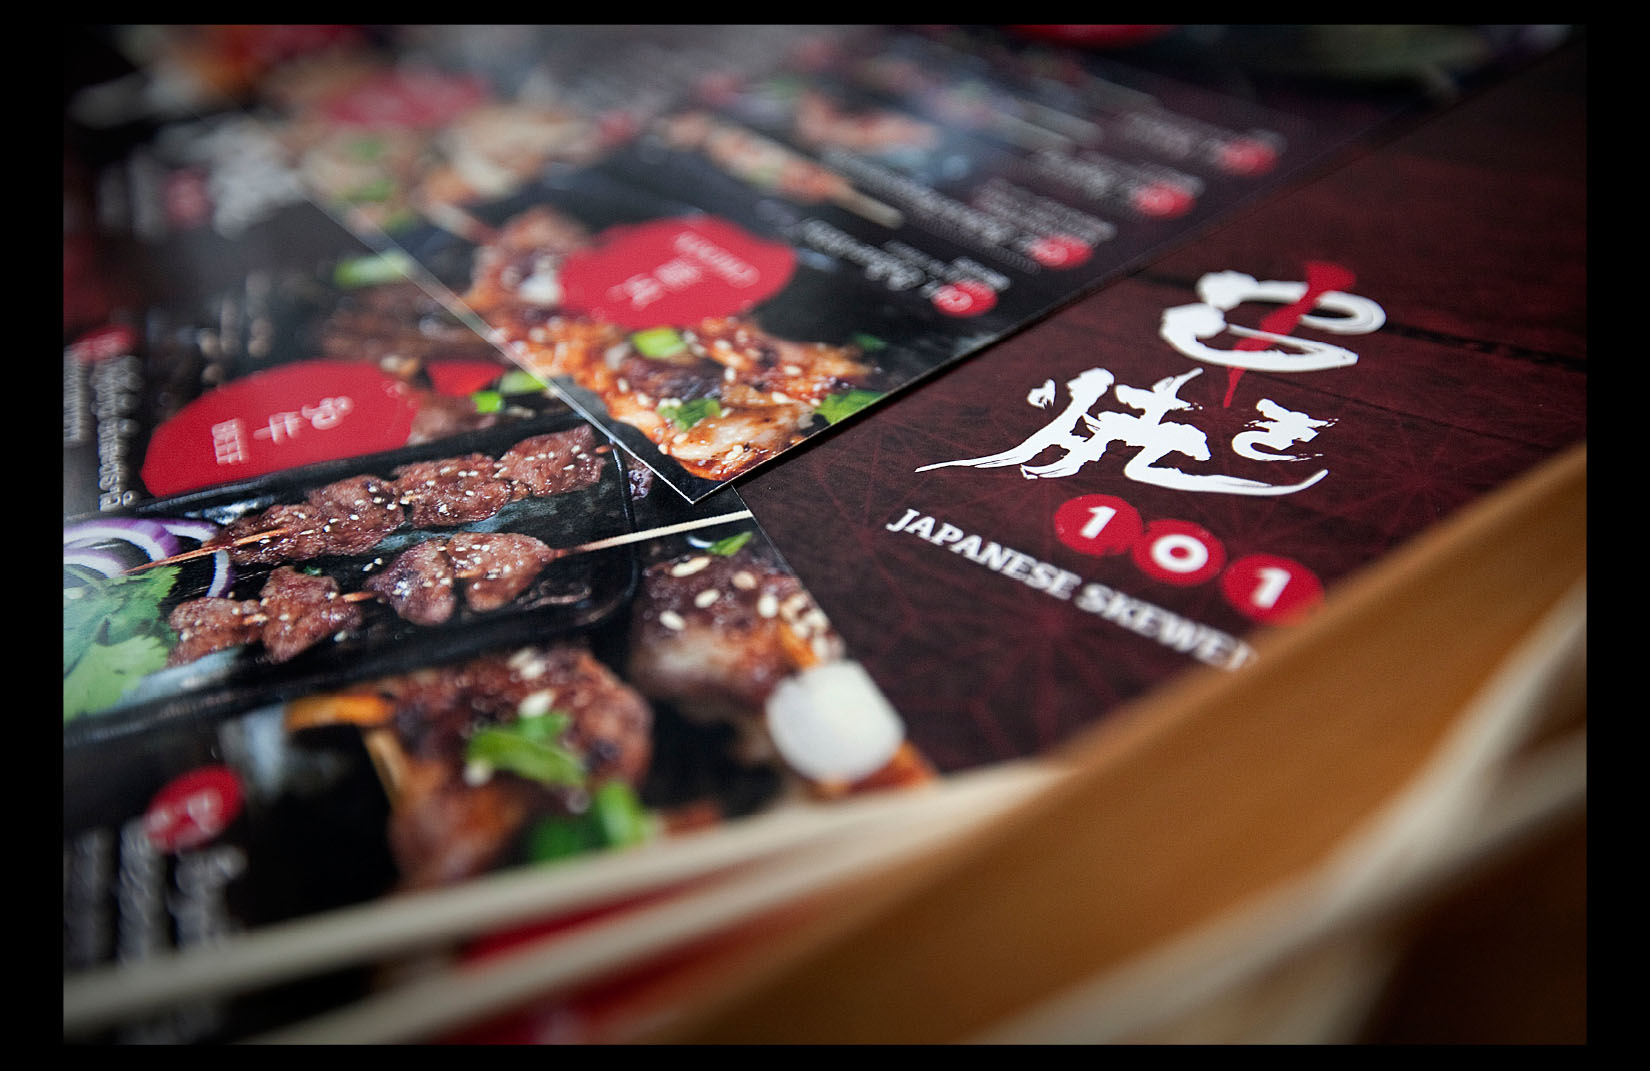 ROBATA 101 - Menu Design & Photography